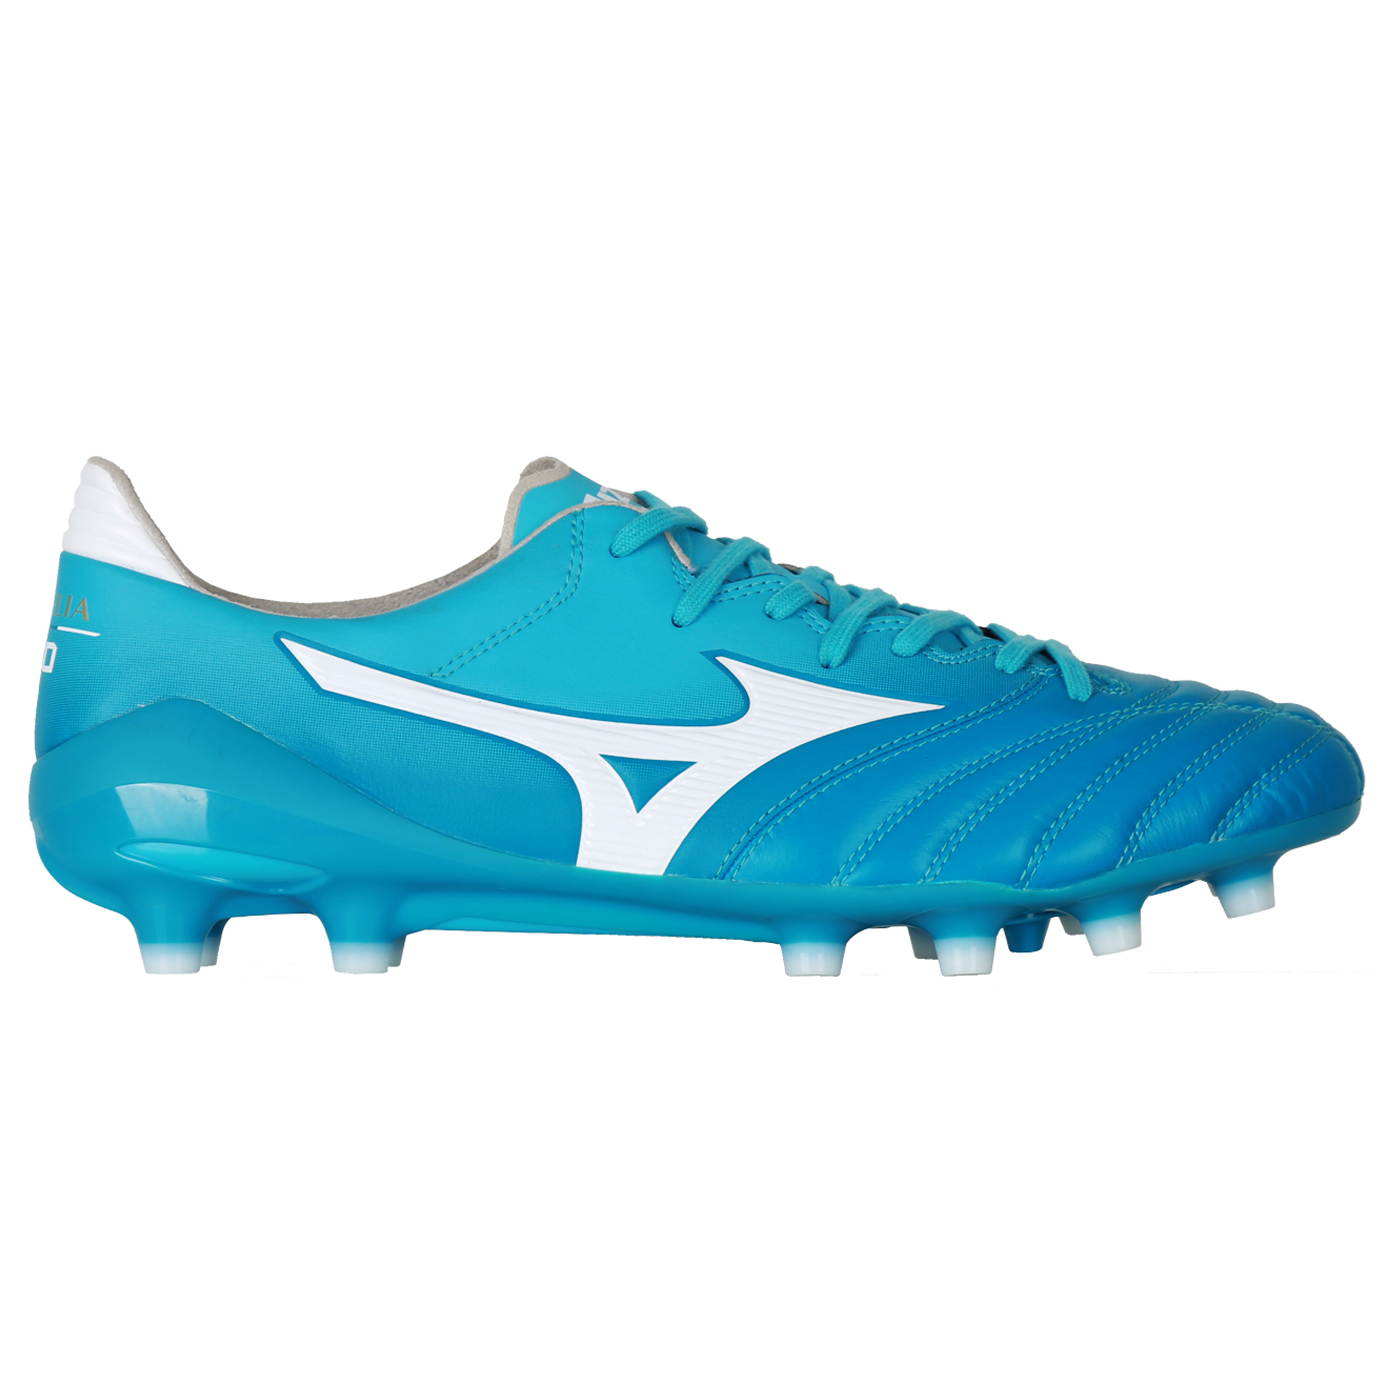 MORELIA NEO II MD - CARIBBEAN SEA/ WHITE/ BLUE ATOLL